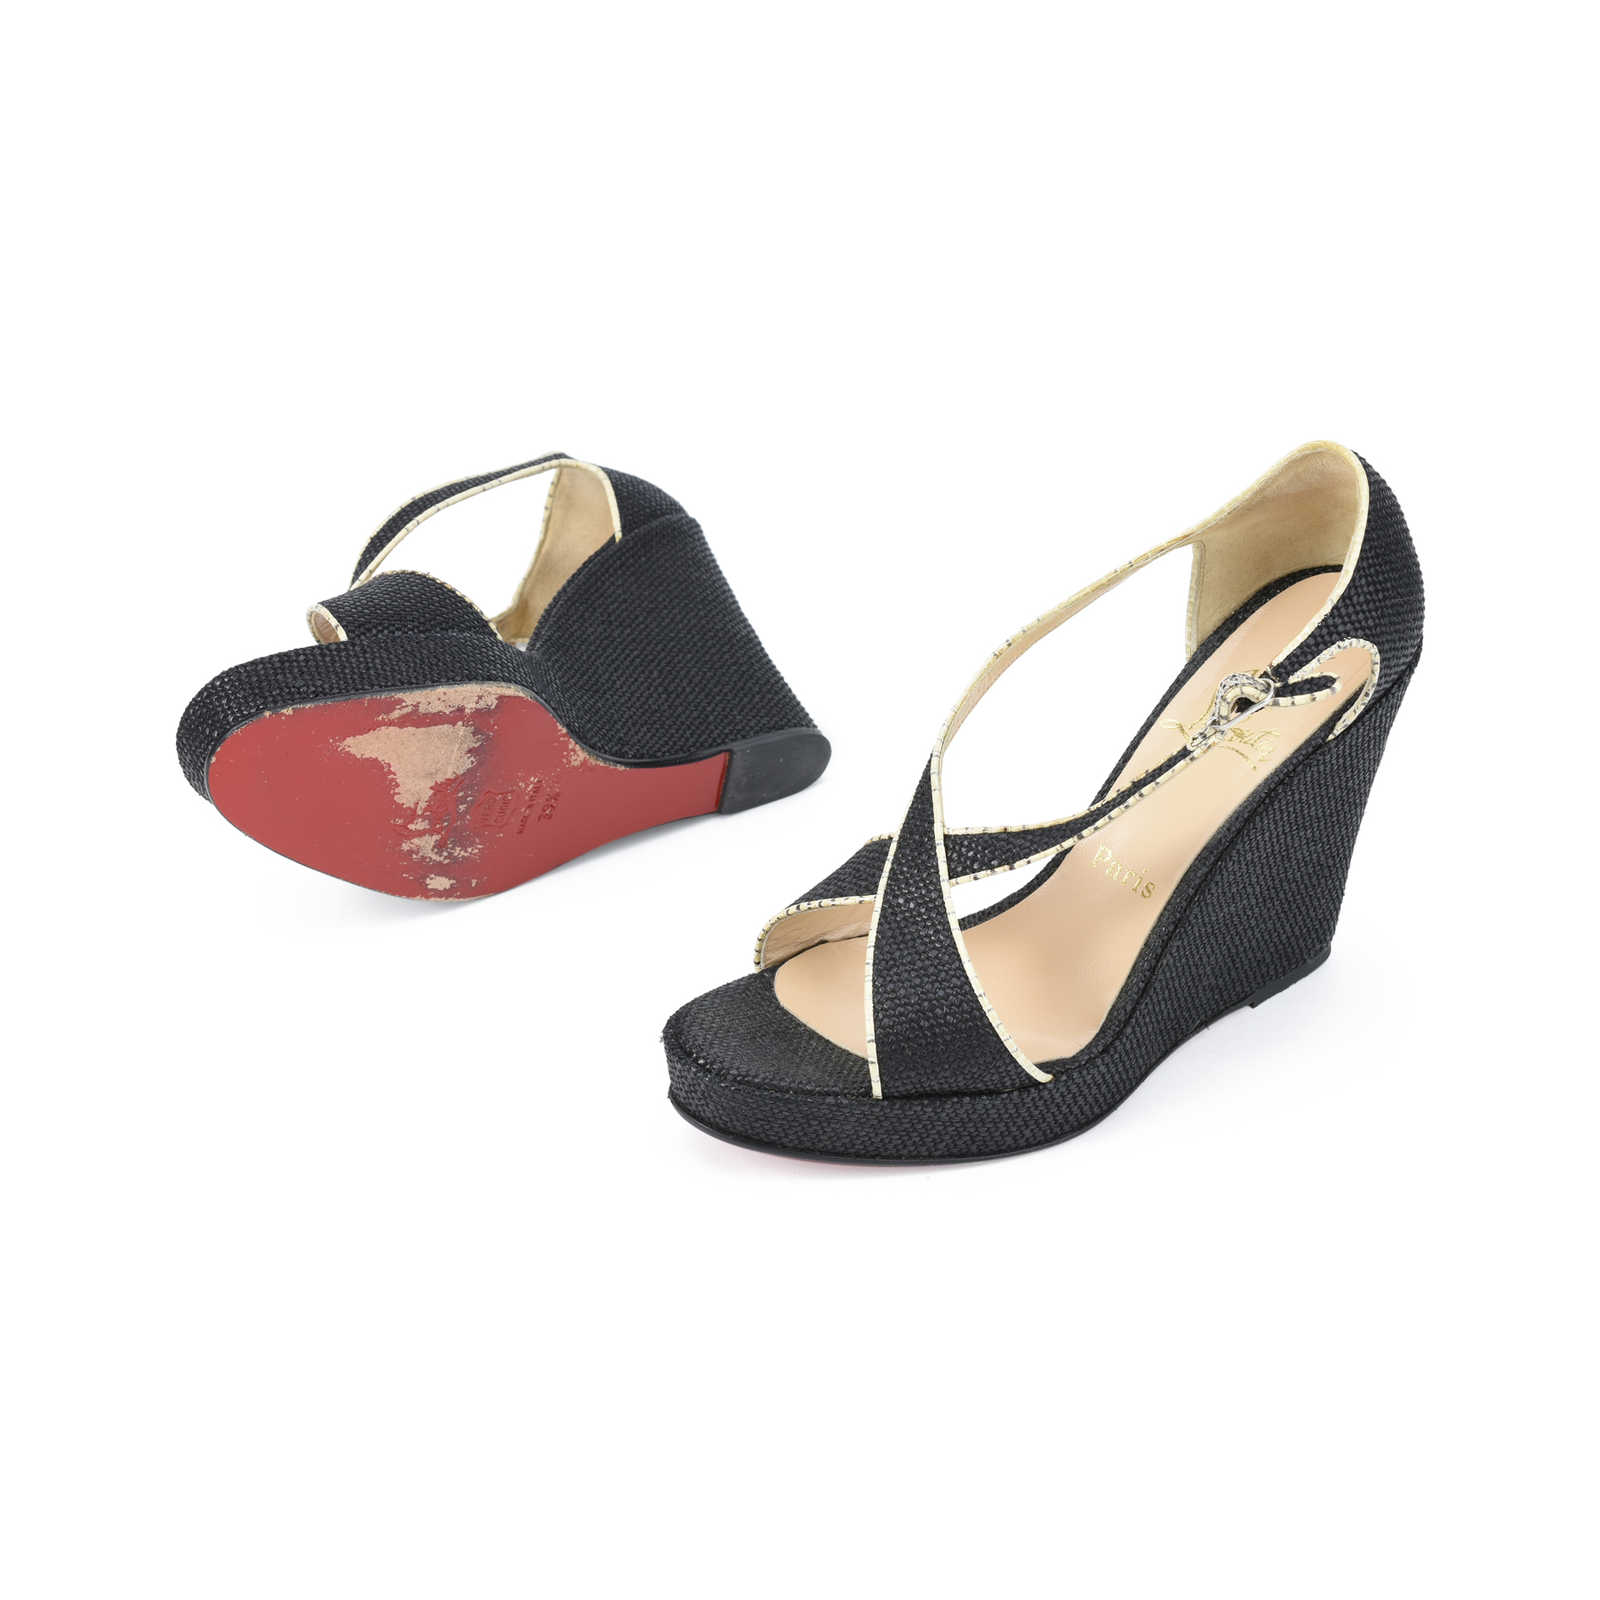 496a6df7272 netherlands christian louboutin city 120 platform sandals menu 73c28 ...